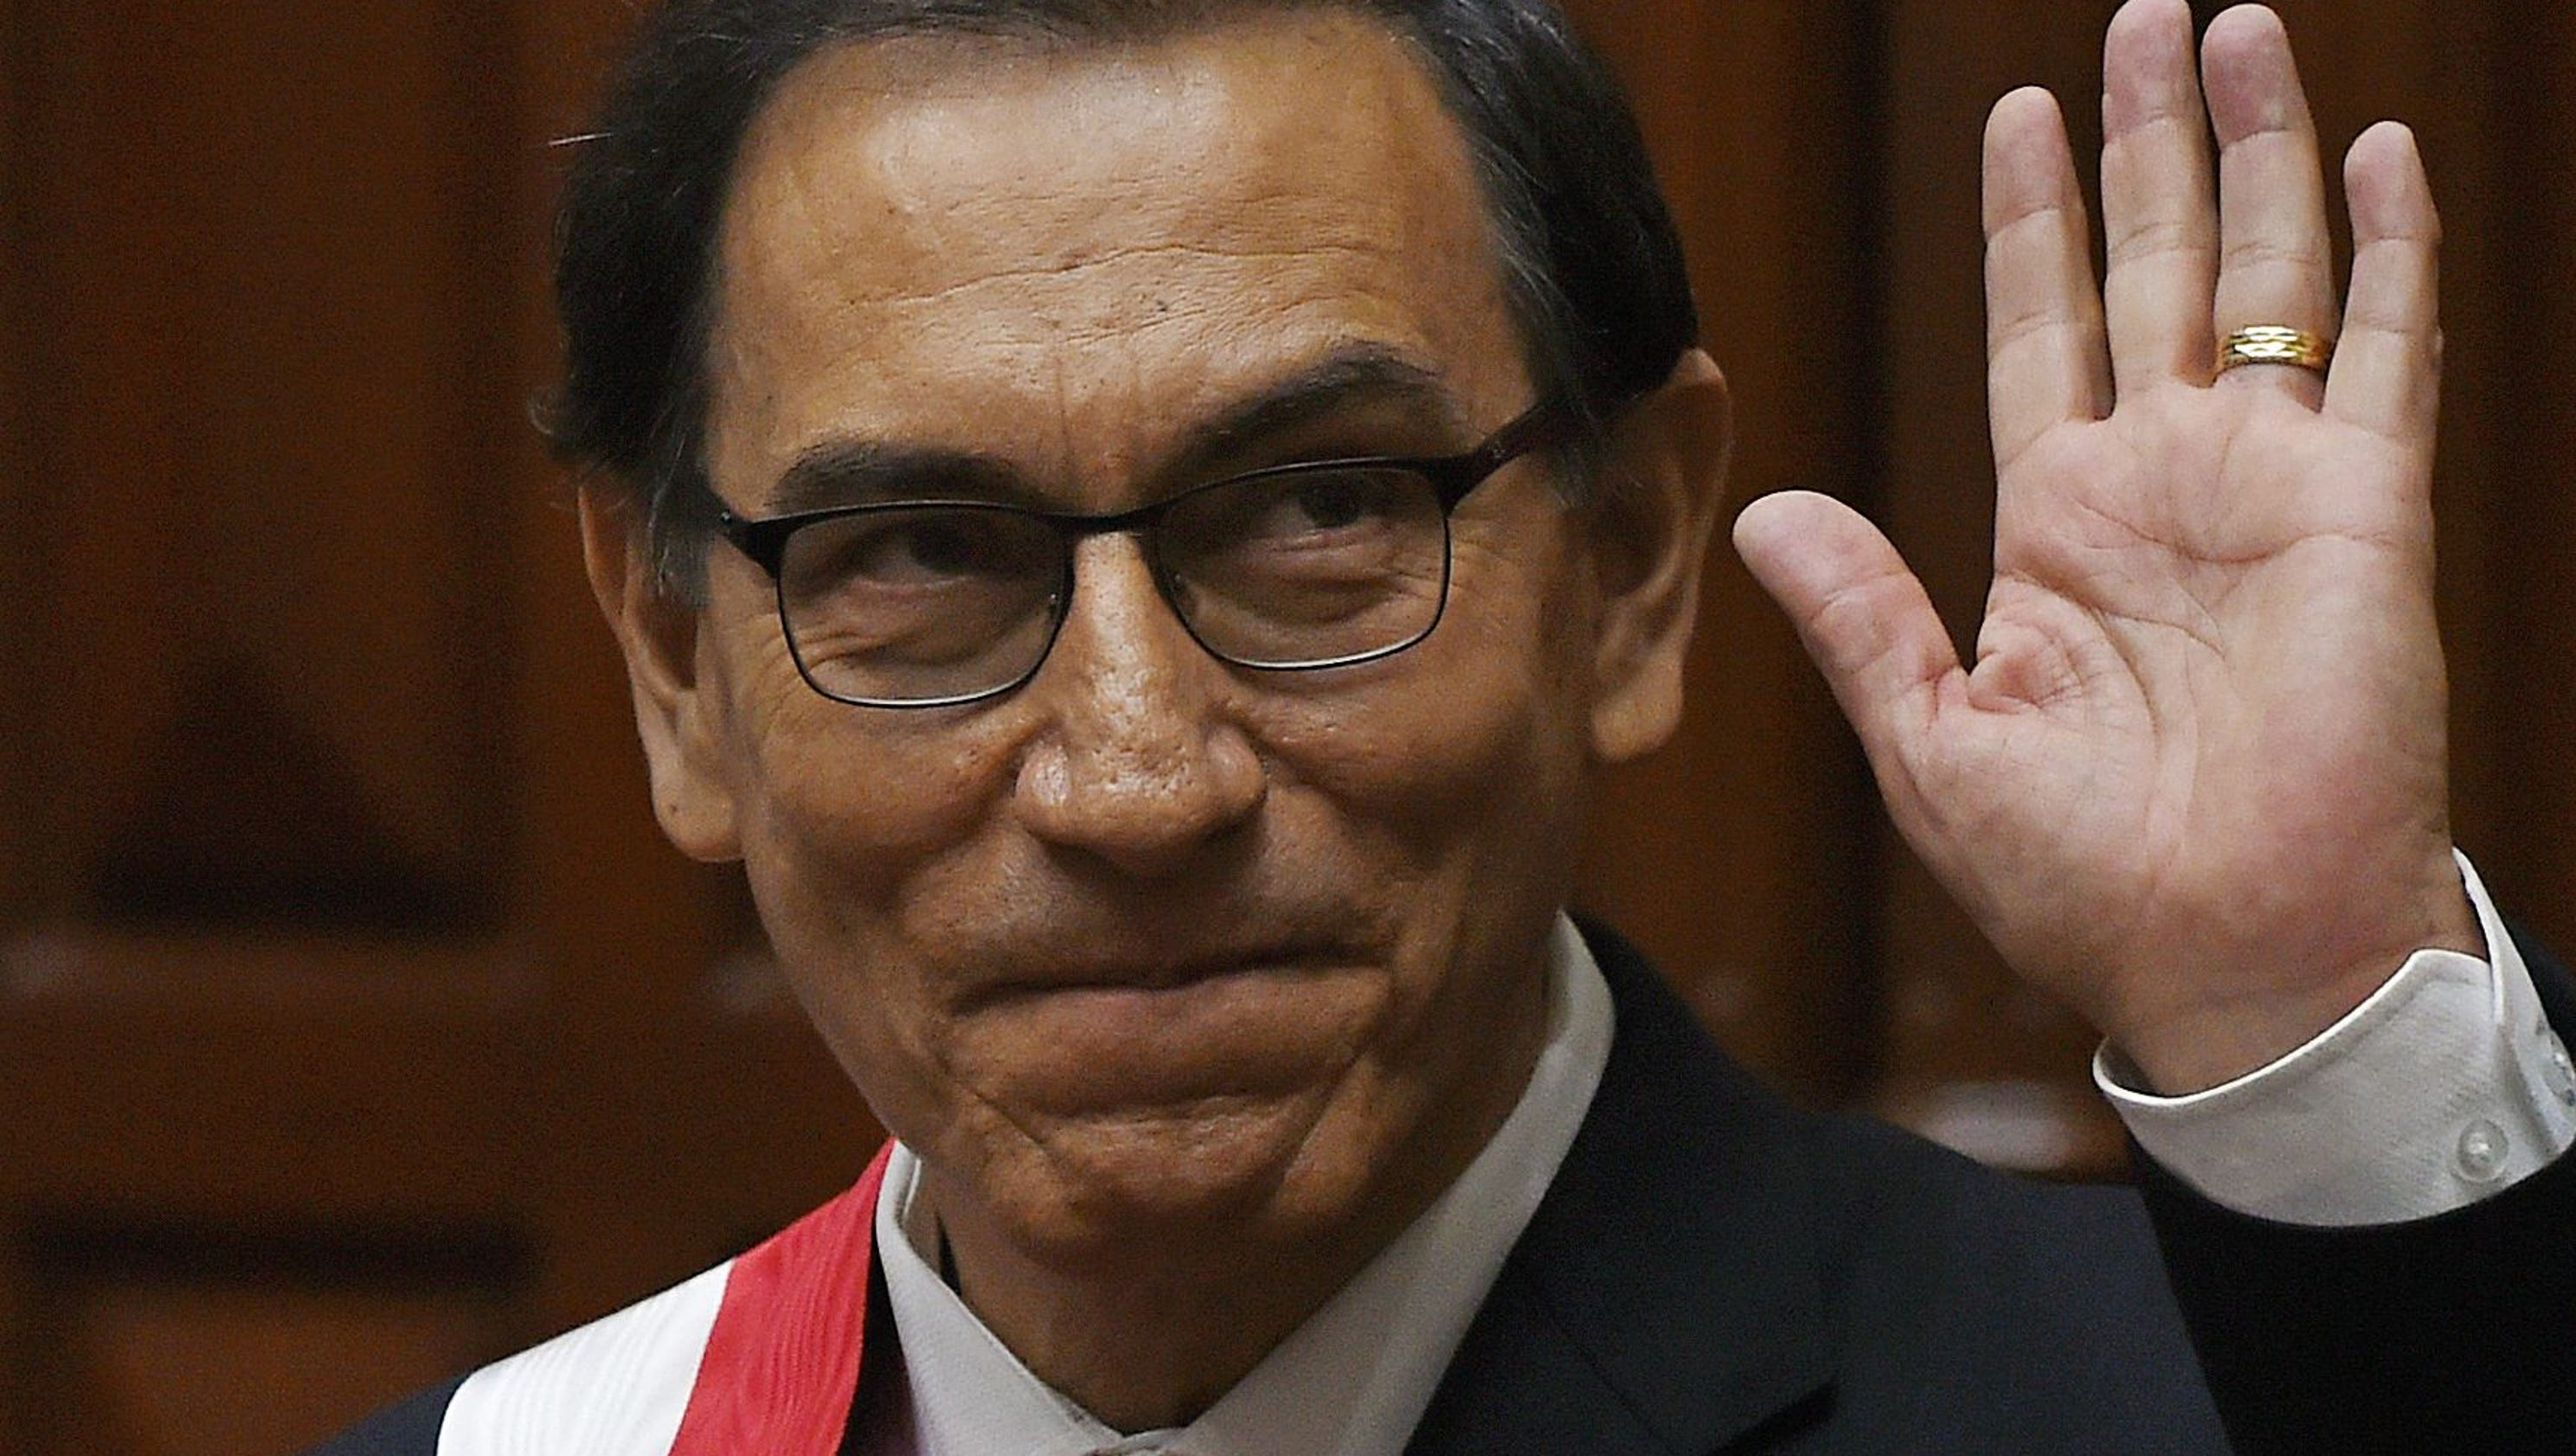 martin vizcarra becomes peru president after scandal ousts predecessor